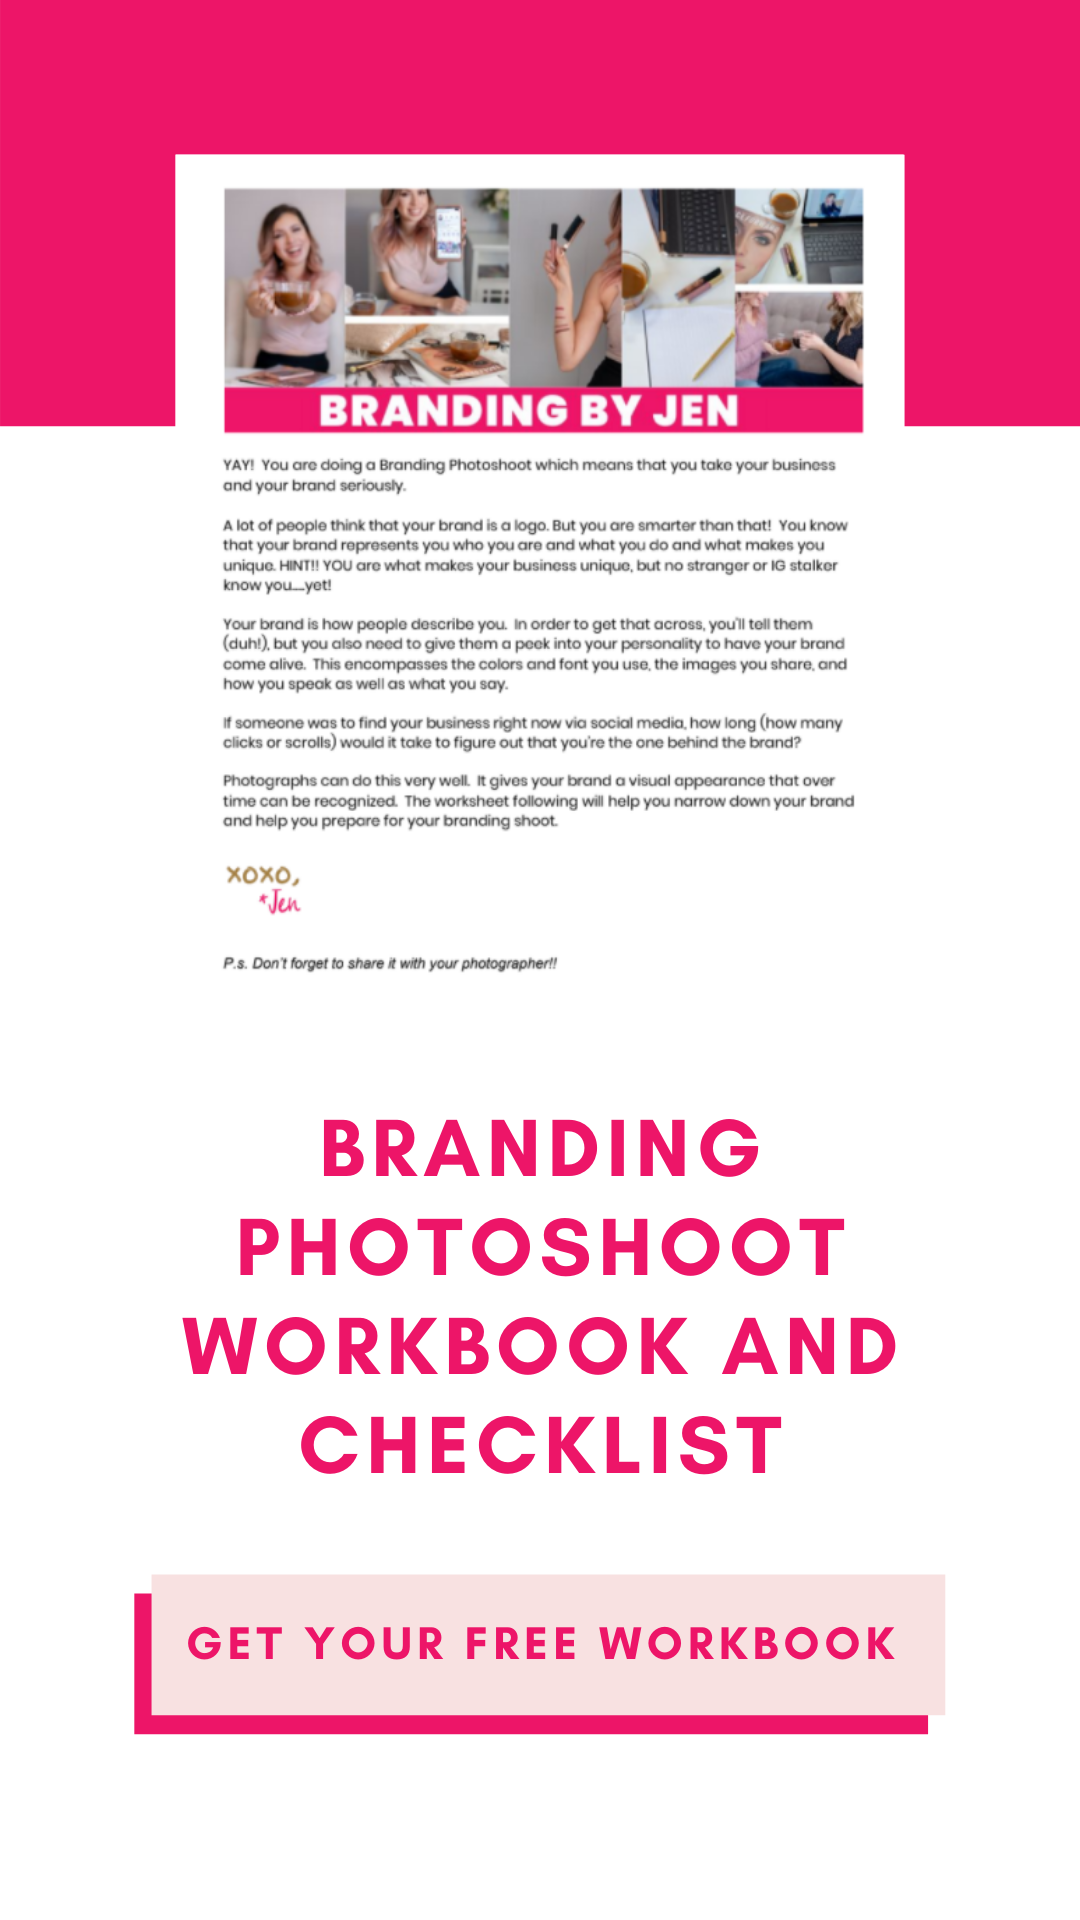 Branding Photoshoot Workbook and Checklist 2